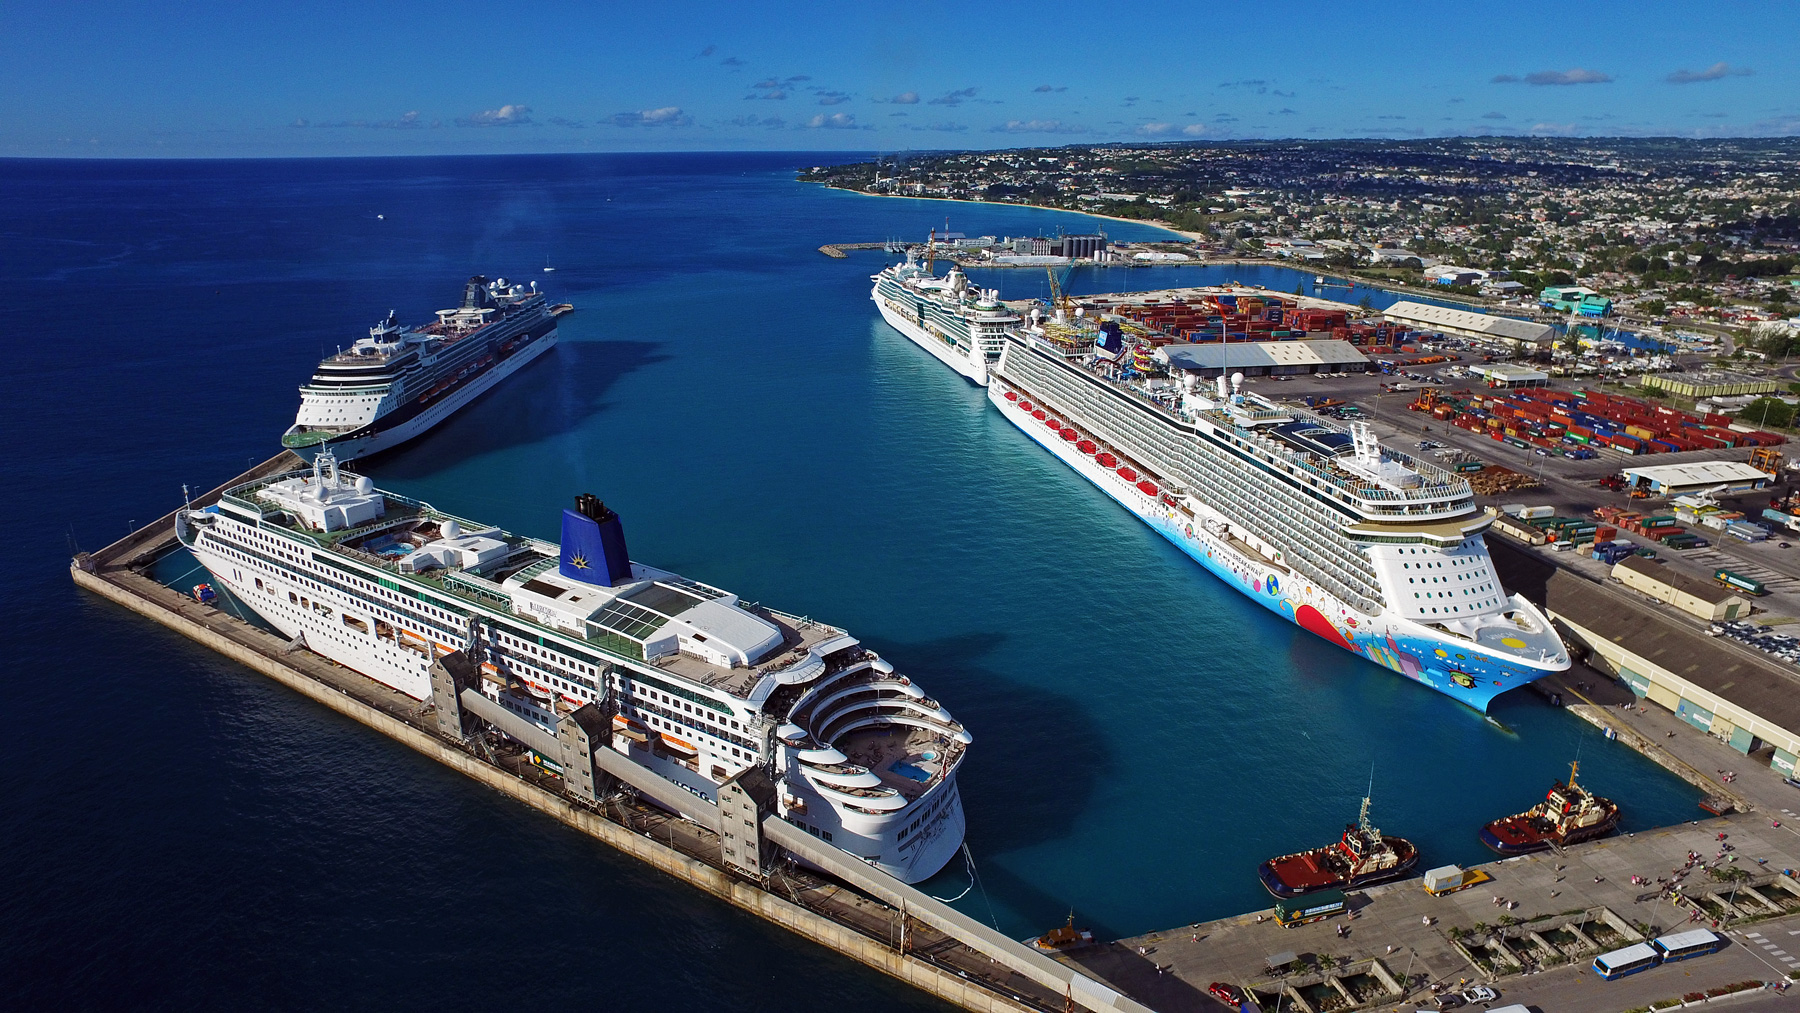 cruise ship photography for the barbados port authority recent drone aerial work from above